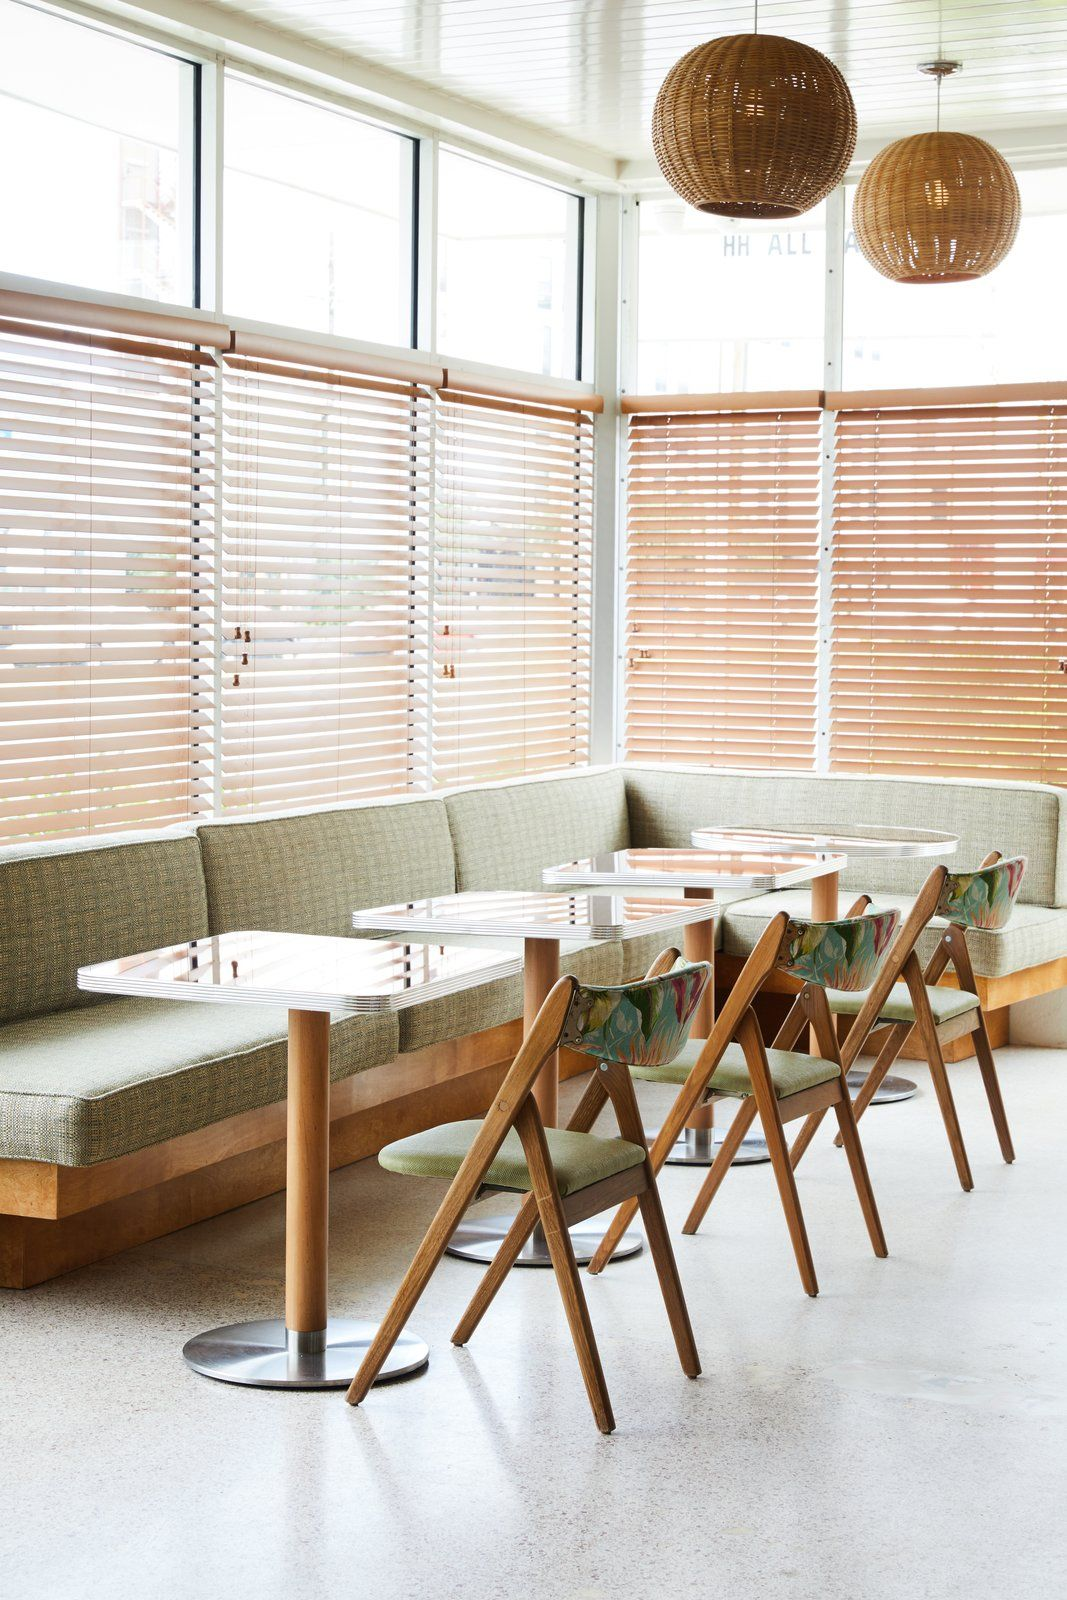 Banquette New Orleans on